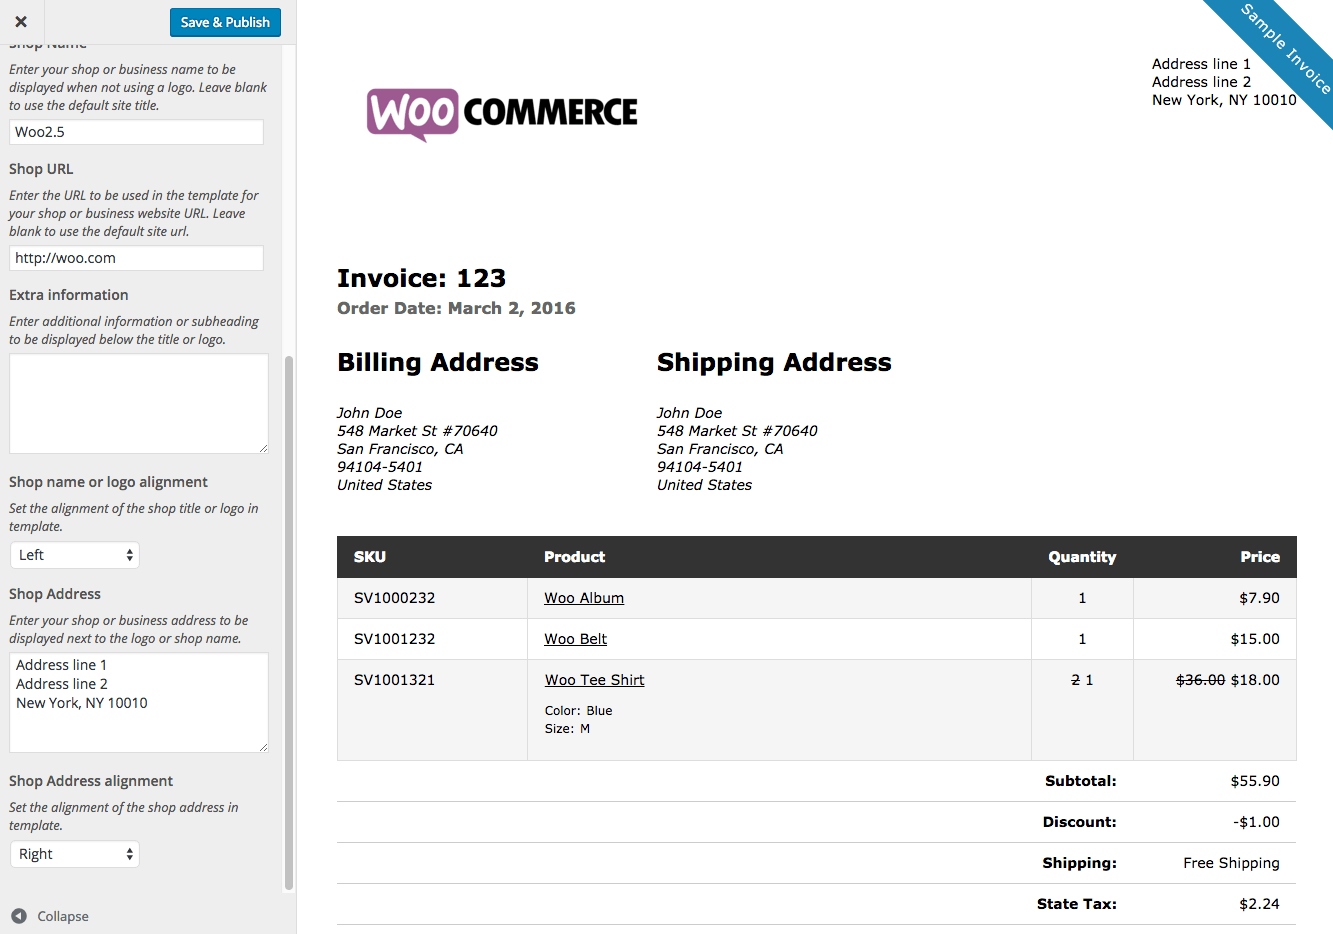 Maidofhonortoastus  Picturesque Woocommerce Print Invoices Amp Packing Lists  Woocommerce Docs With Handsome Woocommerce Print Invoices  Packing Lists Customizer With Divine Digital Receipt Also Online Receipt Template In Addition Taxi Cab Receipt And Irs Receipt Requirements As Well As Send Read Receipts Additionally Avis Rental Car Receipt From Docswoocommercecom With Maidofhonortoastus  Handsome Woocommerce Print Invoices Amp Packing Lists  Woocommerce Docs With Divine Woocommerce Print Invoices  Packing Lists Customizer And Picturesque Digital Receipt Also Online Receipt Template In Addition Taxi Cab Receipt From Docswoocommercecom